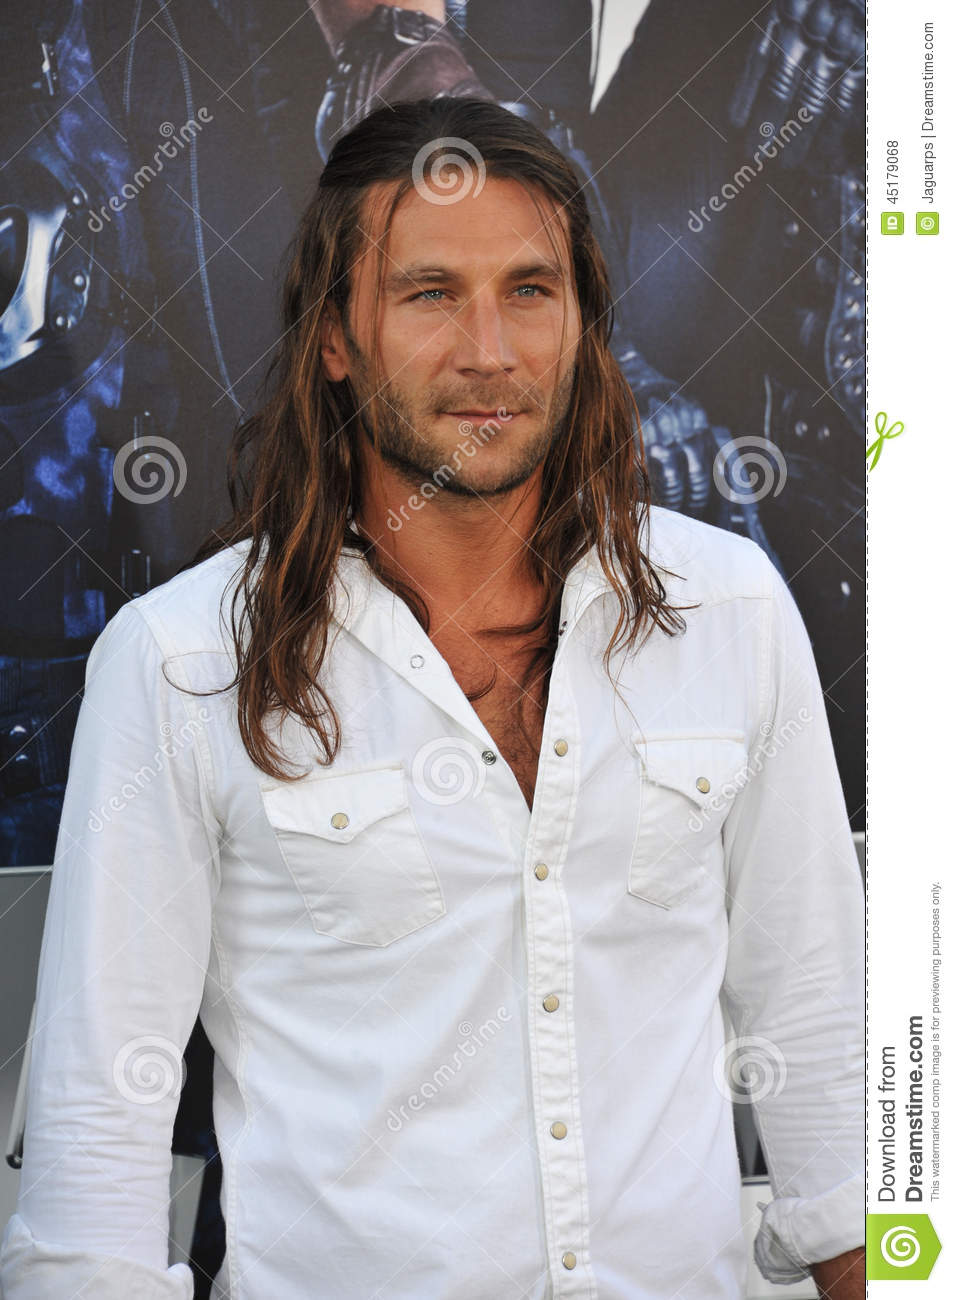 zach mcgowan horoscopezach mcgowan дракула, zach mcgowan agents of shield, zach mcgowan the 100, zach mcgowan height, zach mcgowan age, zach mcgowan training, zach mcgowan instagram, zach mcgowan horoscope, zach mcgowan wiki, zach mcgowan young, zach mcgowan interview, zach mcgowan hairstyle, zach mcgowan sister, zach mcgowan rose, zach mcgowan astrology, zach mcgowan emily johnson, zach mcgowan movies, zach mcgowan facebook, zach mcgowan bio, zach mcgowan кинопоиск